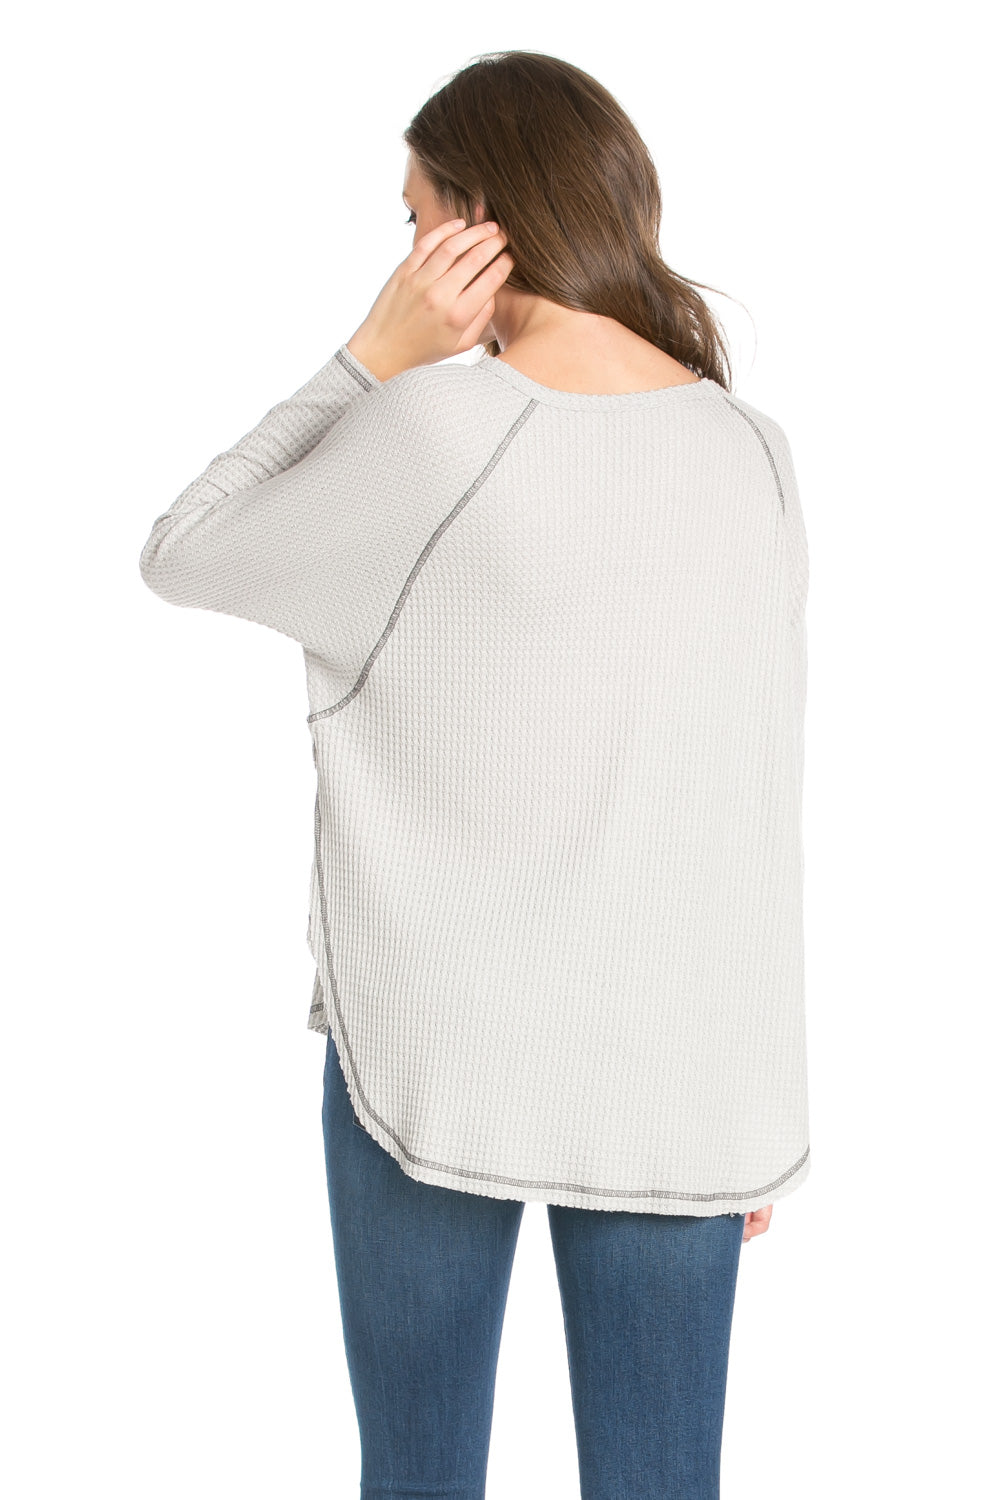 Casual L/S Hi-Low Hemline Top